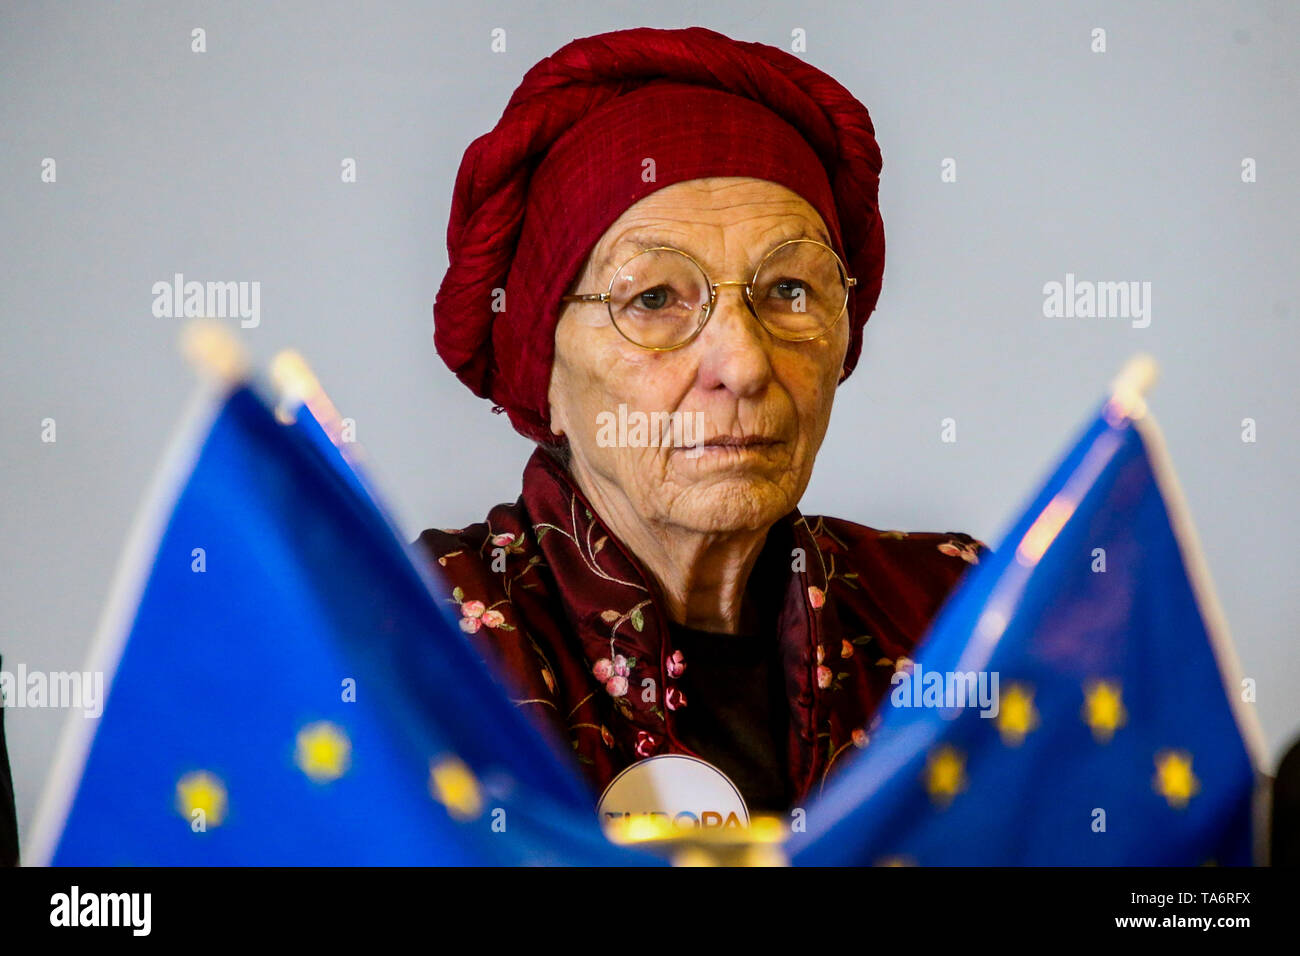 Naples, Italy. 21st May, 2019. Emma Bonino, Italian Member of Parliament, was Minister of Foreign Affairs of the Italian Republic in the Letta Government from 28 April 2013 to 22 February 2014. She is one of the most important figures of Italian liberal radicalism of the Republican age, press conference for the candidacy of her party '  Europe 'at the next European elections on May 26, 2019 in Naples Credit: Antonio Balasco/Pacific Press/Alamy Live News - Stock Image